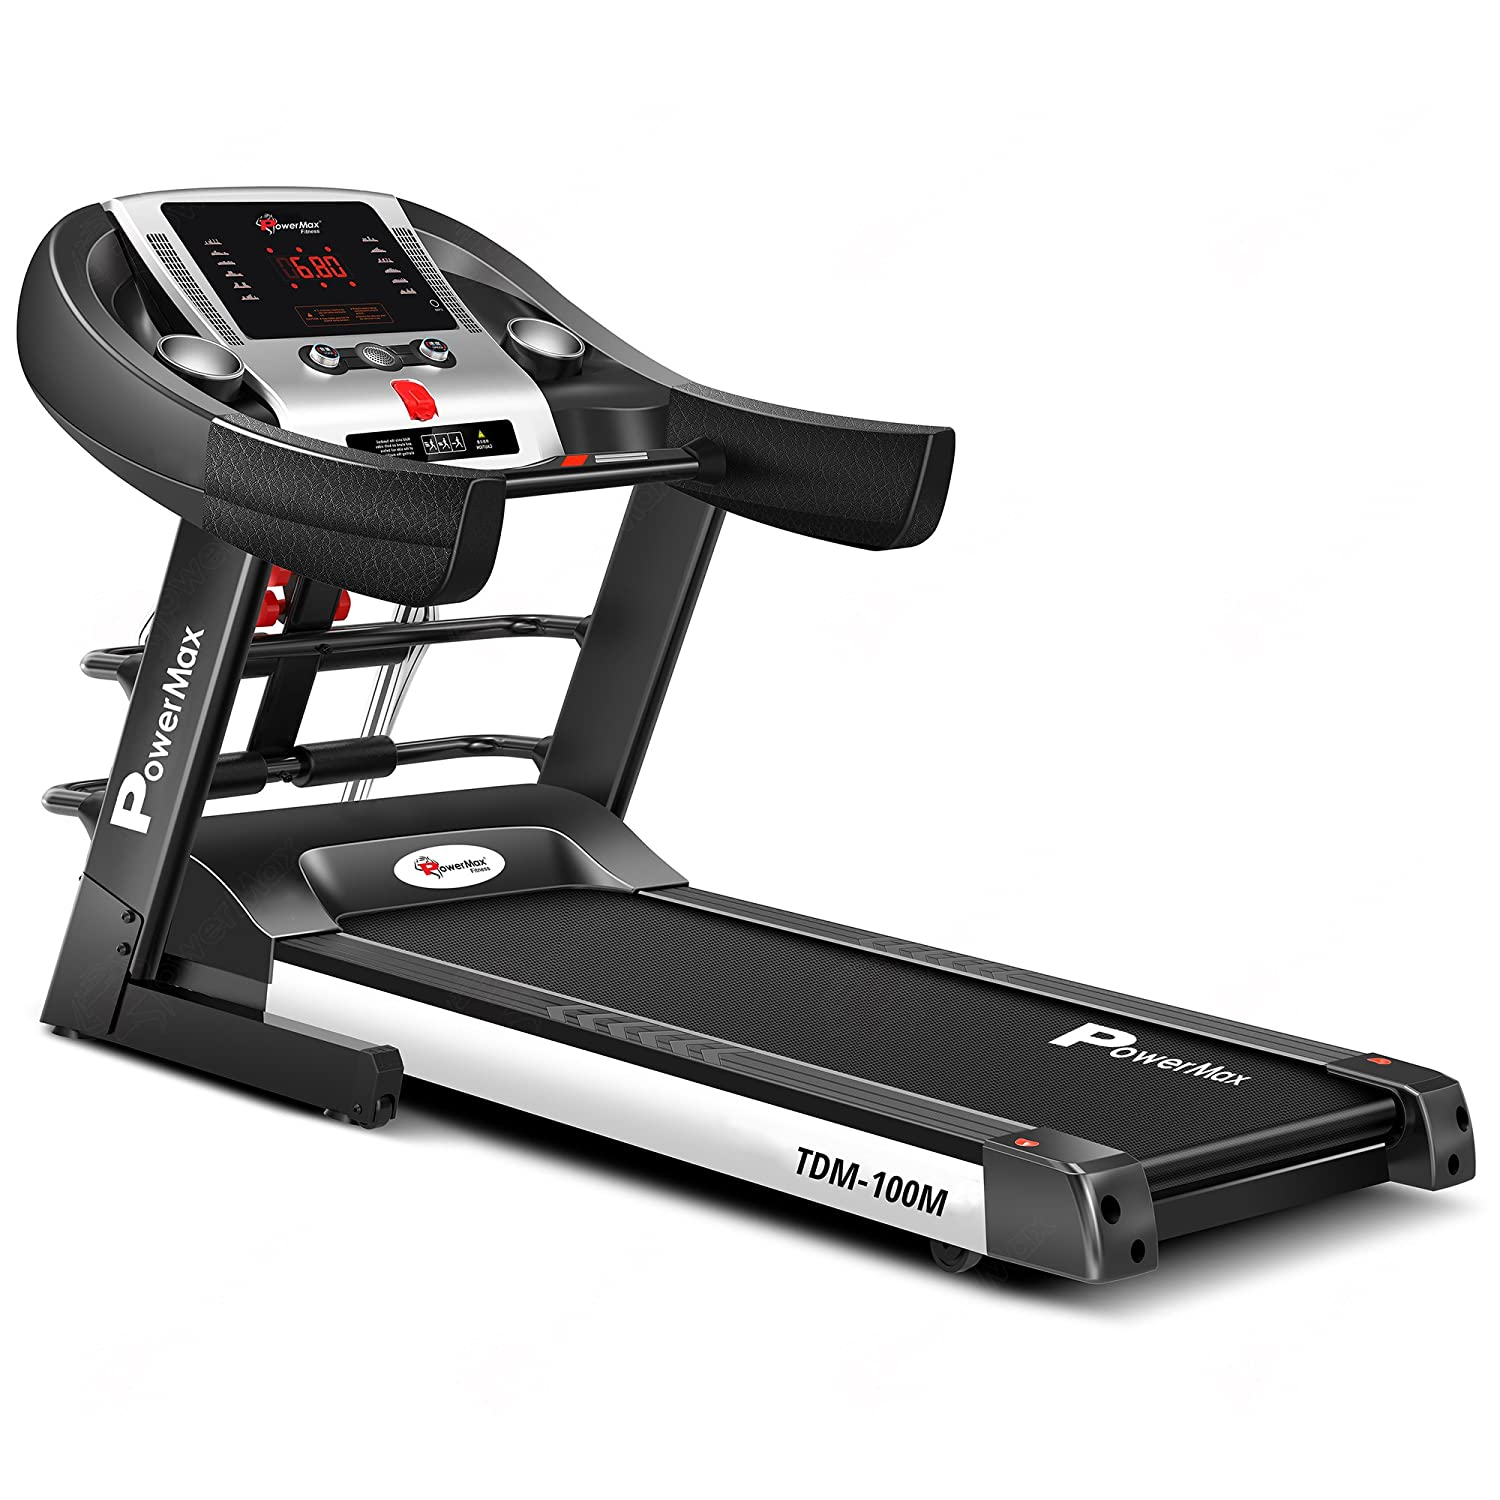 PowerMax Fitness® TDM-100M (2.0HP) Motorized Foldable review